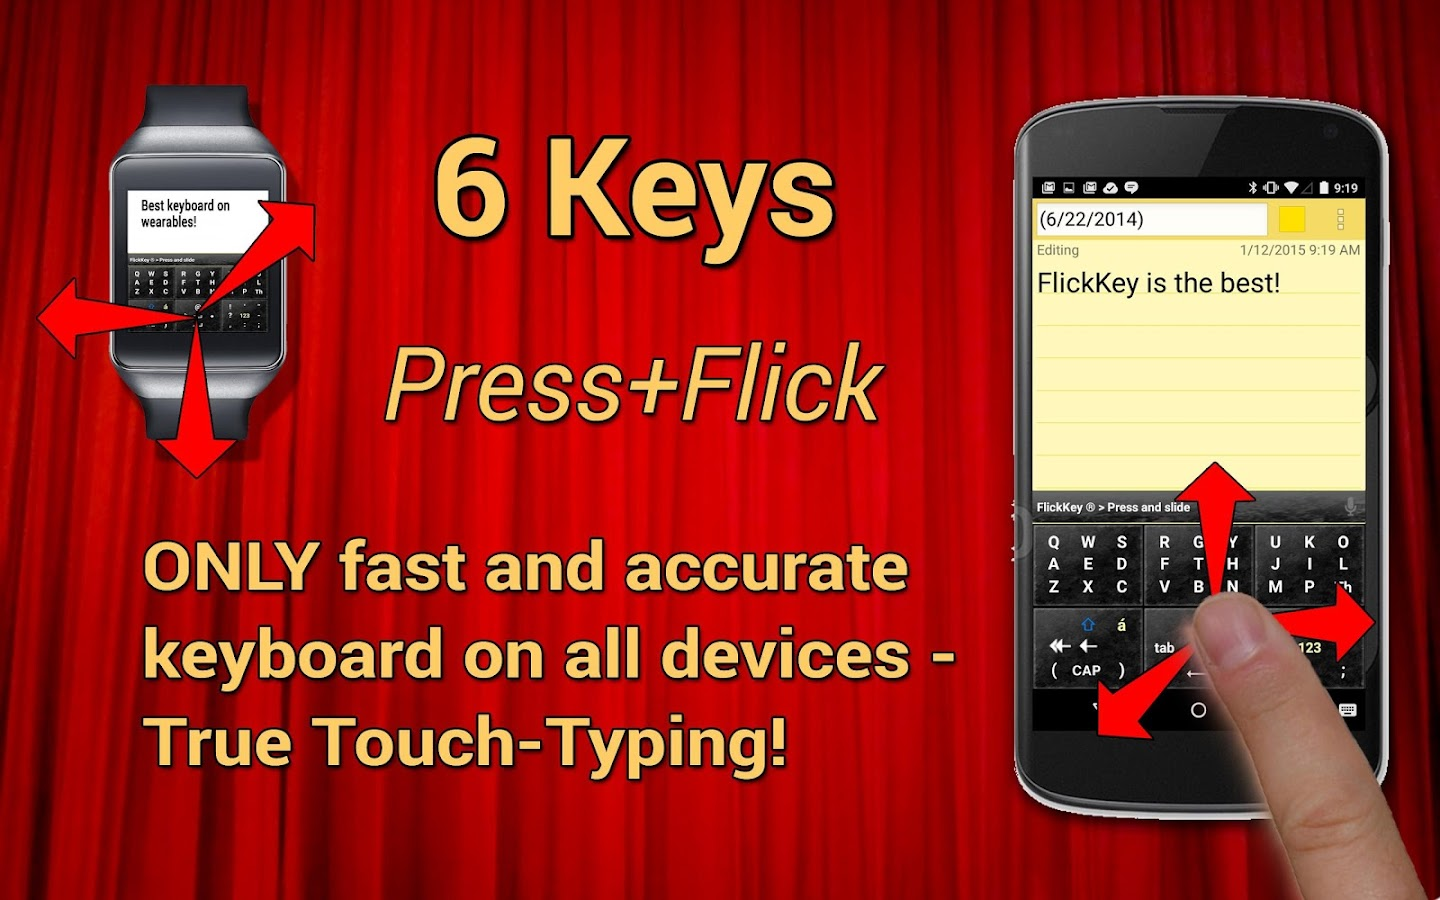 FlickKey Keyboards for Android - screenshot